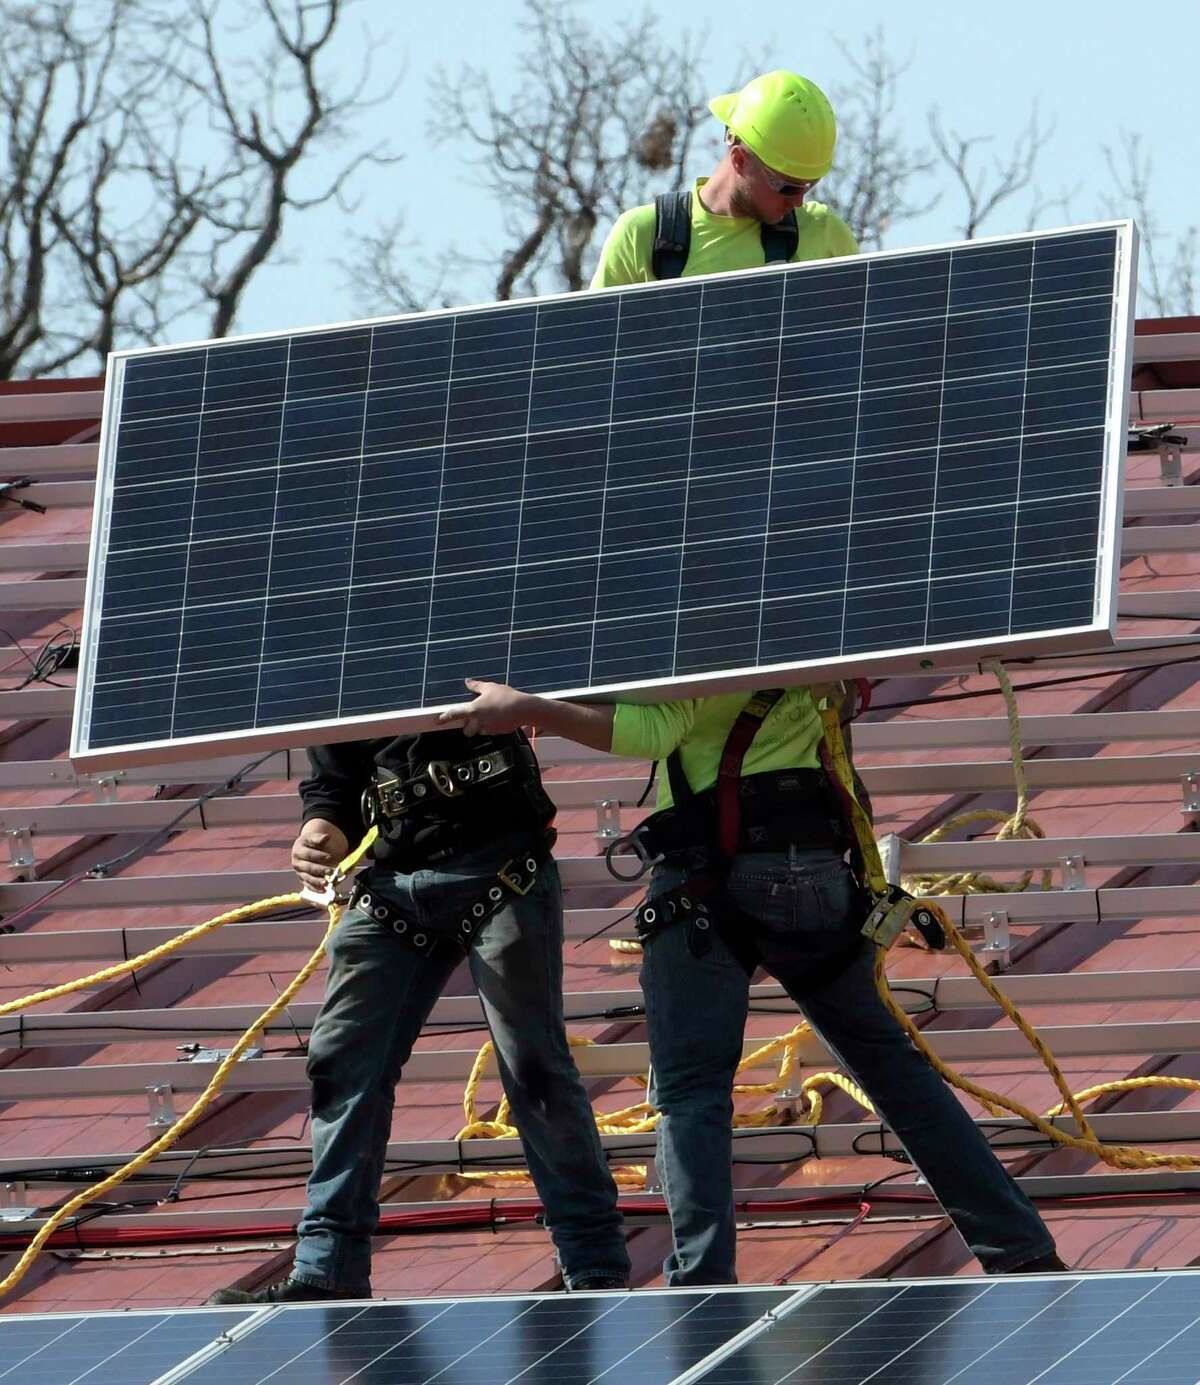 Workers from Monolith Solar install some of the 1396 panels that will cover both sides of the Knickerbacker Recreational Facility Tuesday Feb. 28, 2017 in Troy, N.Y. (Skip Dickstein/Times Union)